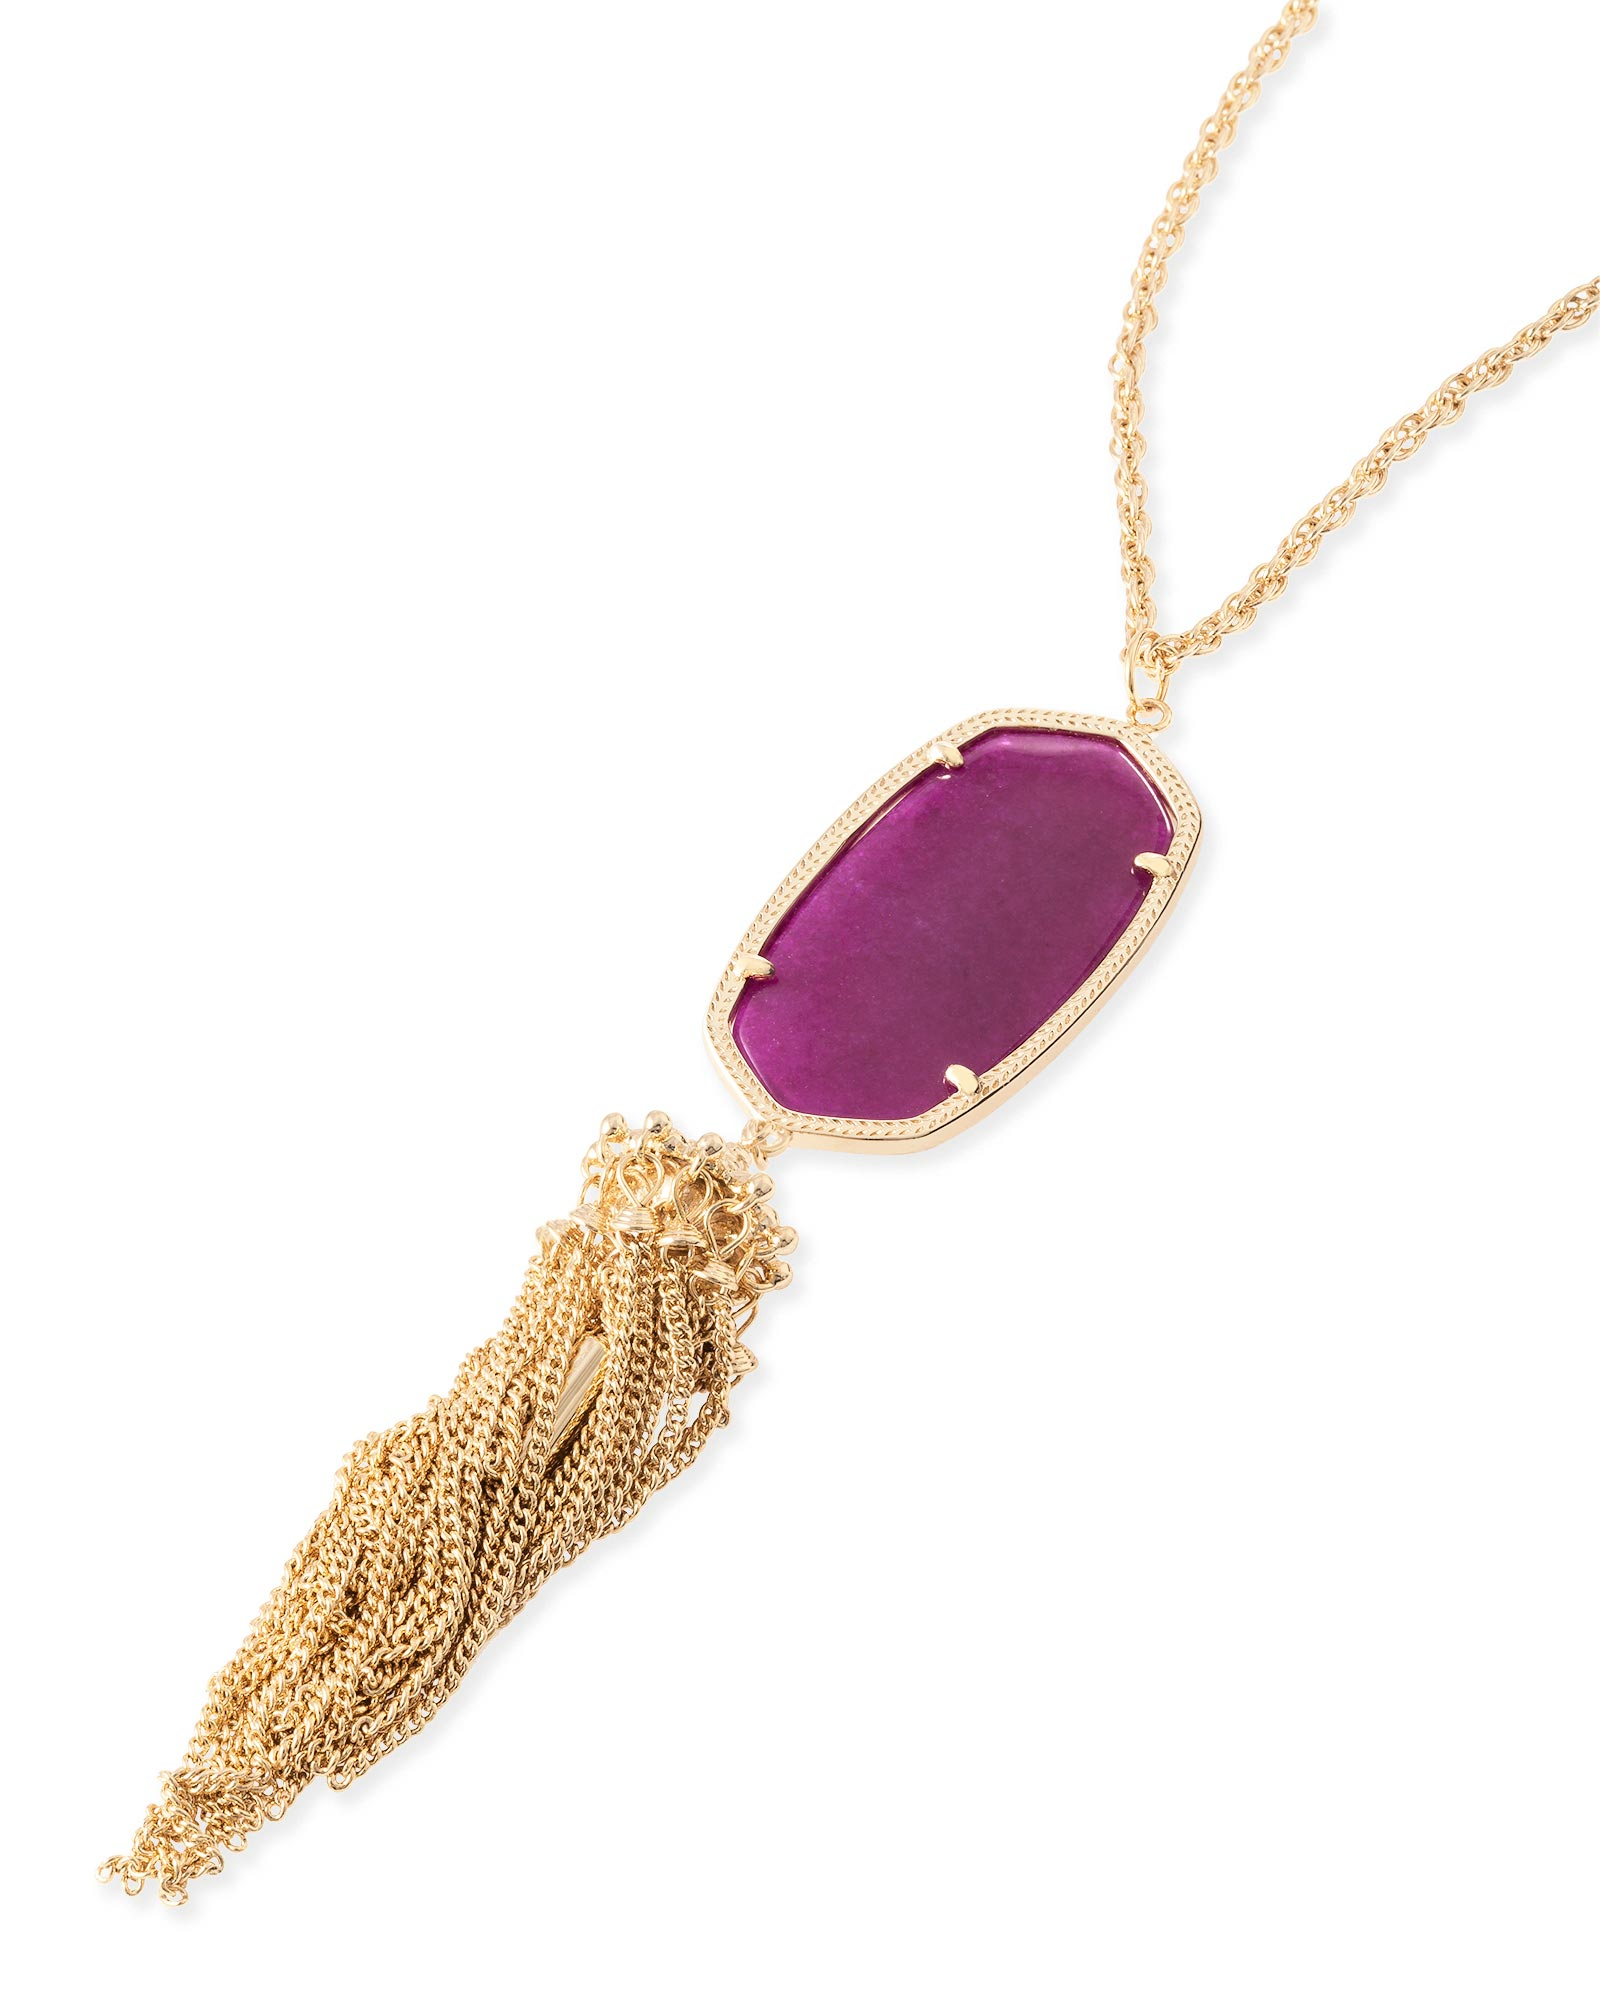 Rayne Necklace in Purple Jade